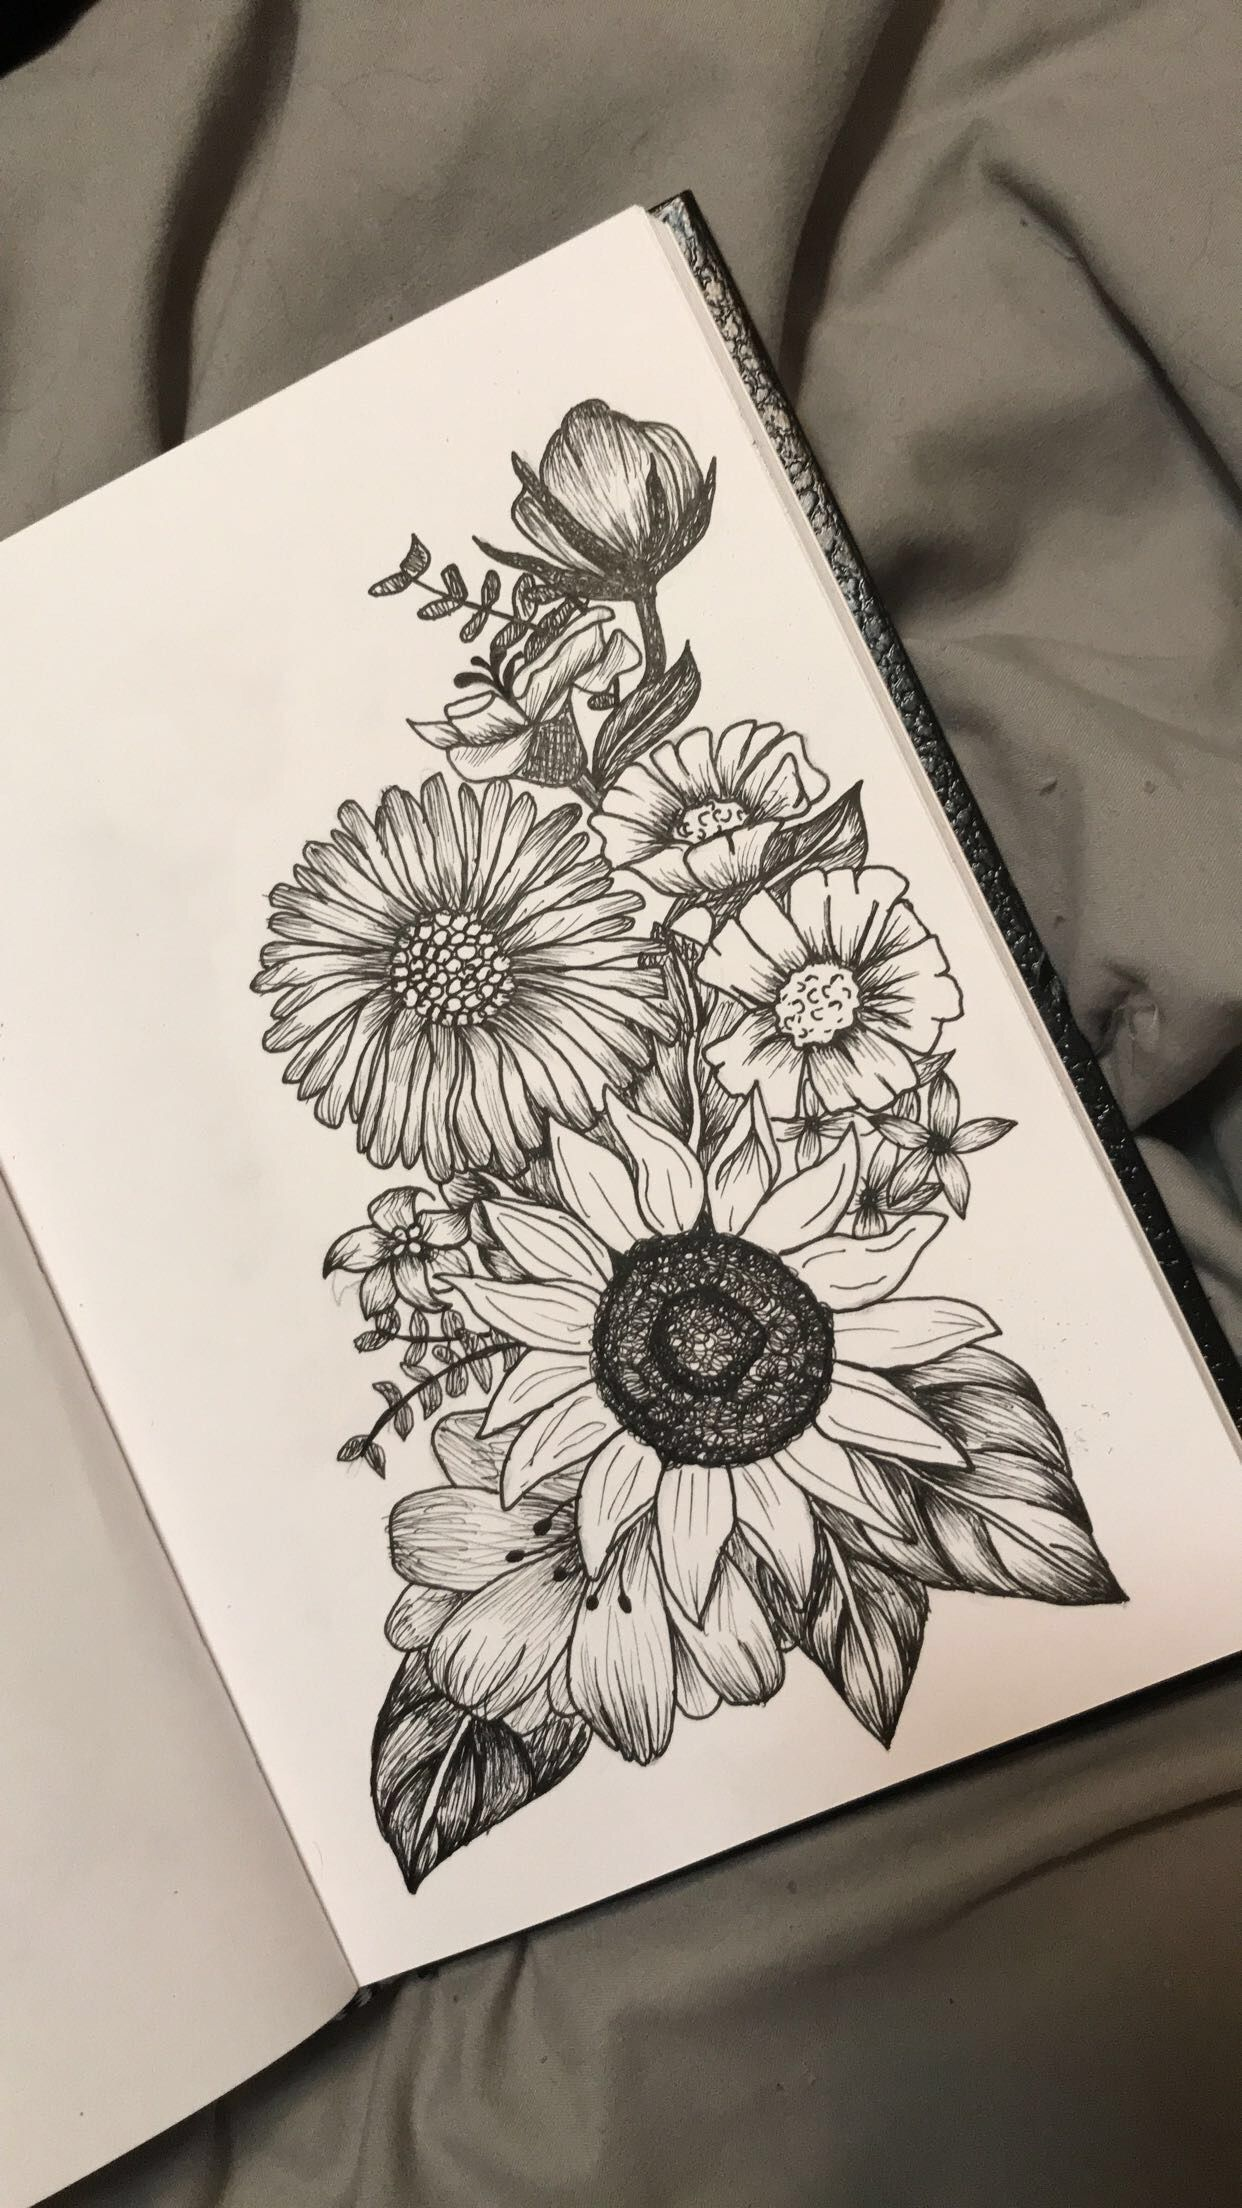 Passion Flower Above Sunflower And Poppies On The Right Hand Side With Lavender Behind Them Inspirational Tattoos Tattoo Drawings Tattoos